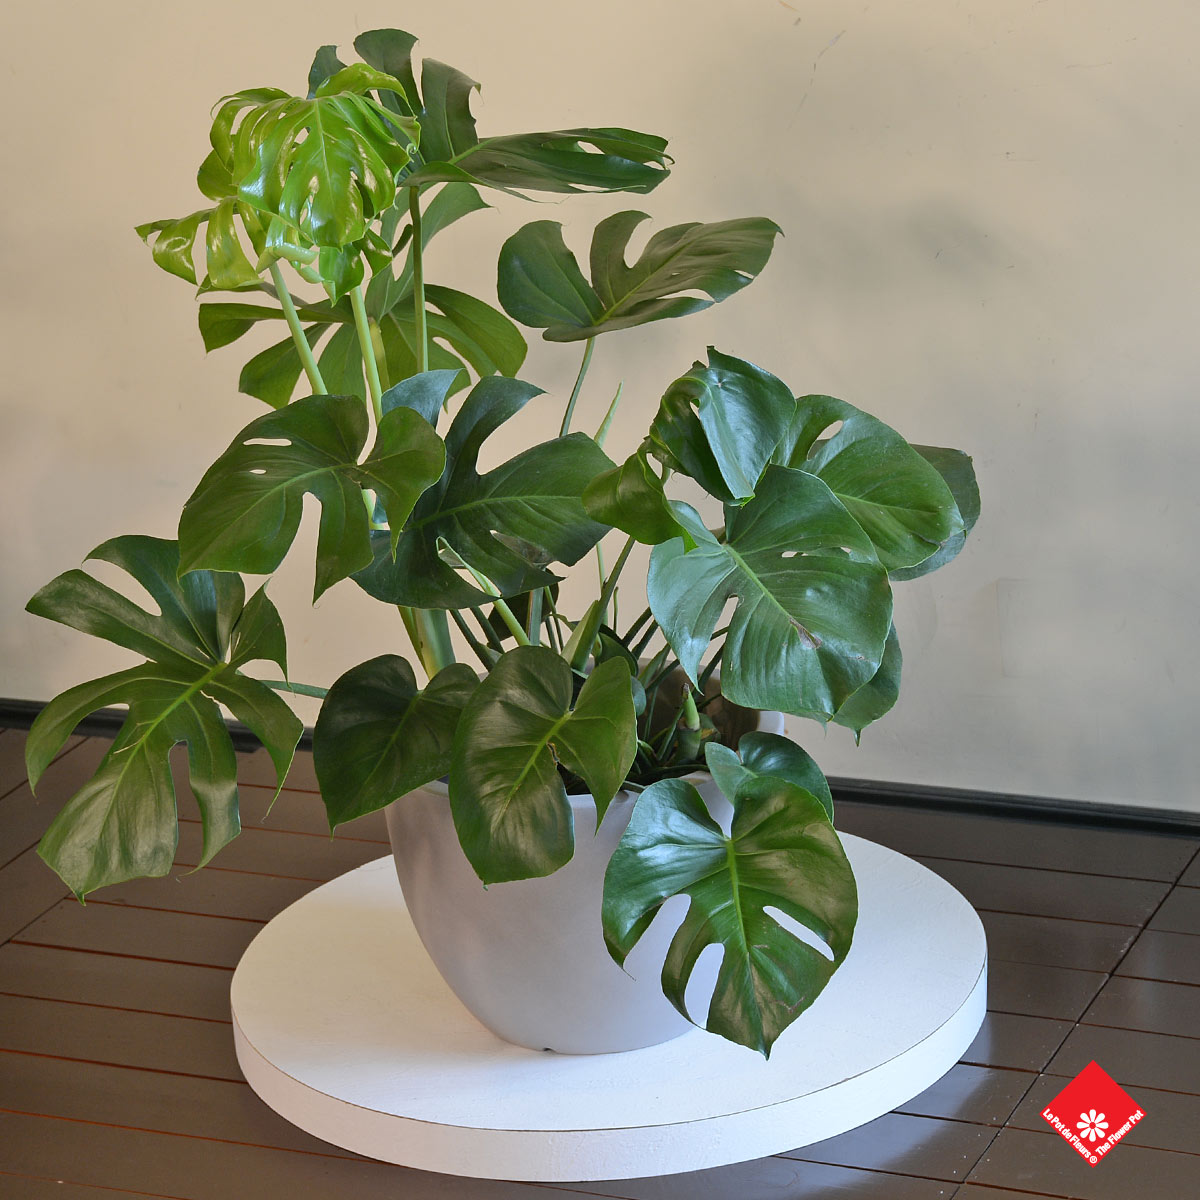 Plante d 39 int rieur monstera deliciosa pour un salon montr al for Plante pour salon